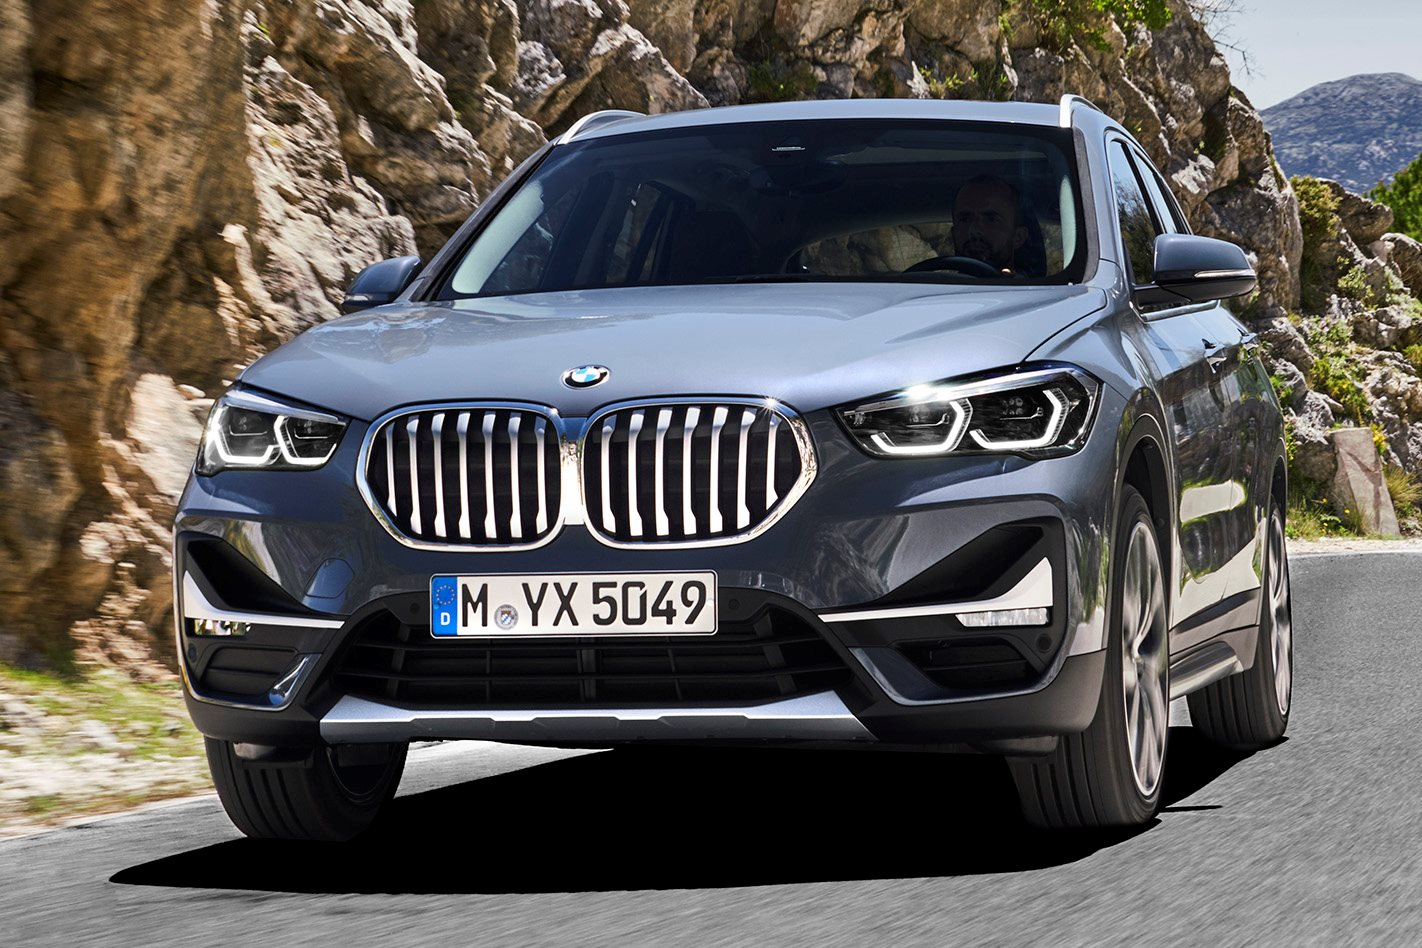 BMW X1 2020 price and features confirmed